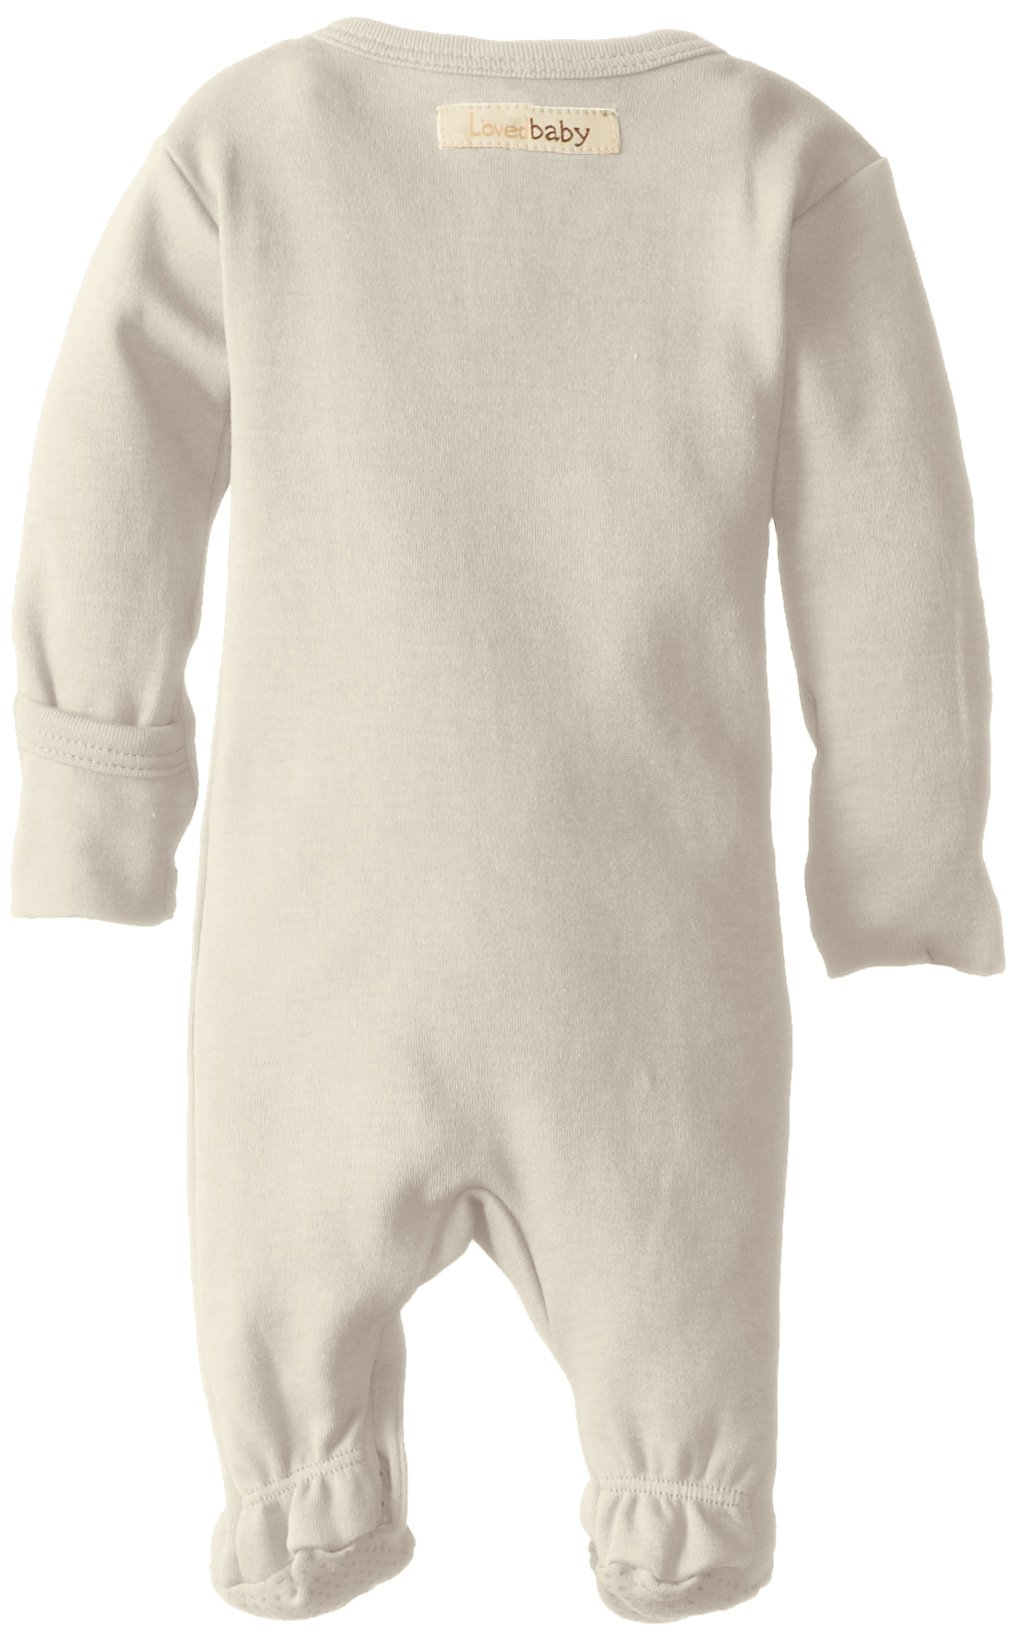 L'ovedbaby Unisex-Baby Organic Cotton Footed Overall, Beige, 0/3 Months by L'ovedbaby (Image #2)